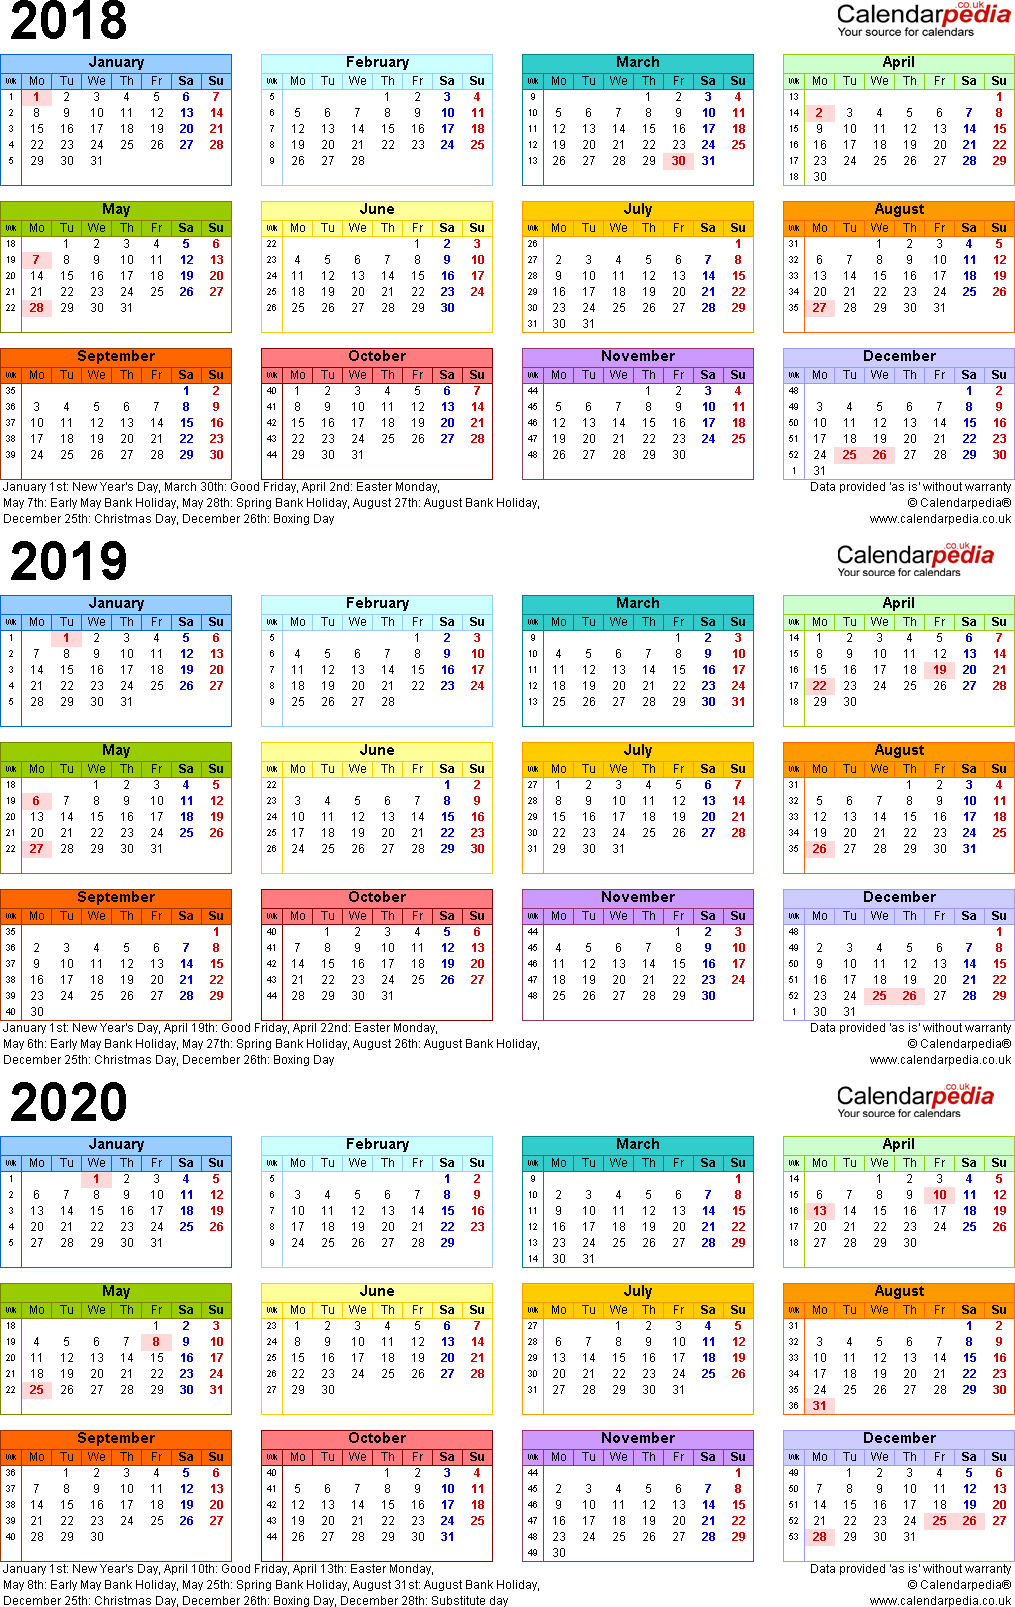 Download Template 3: PDF template for three year calendar 2018-2020 in colour (portrait orientation, 1 page, A4)